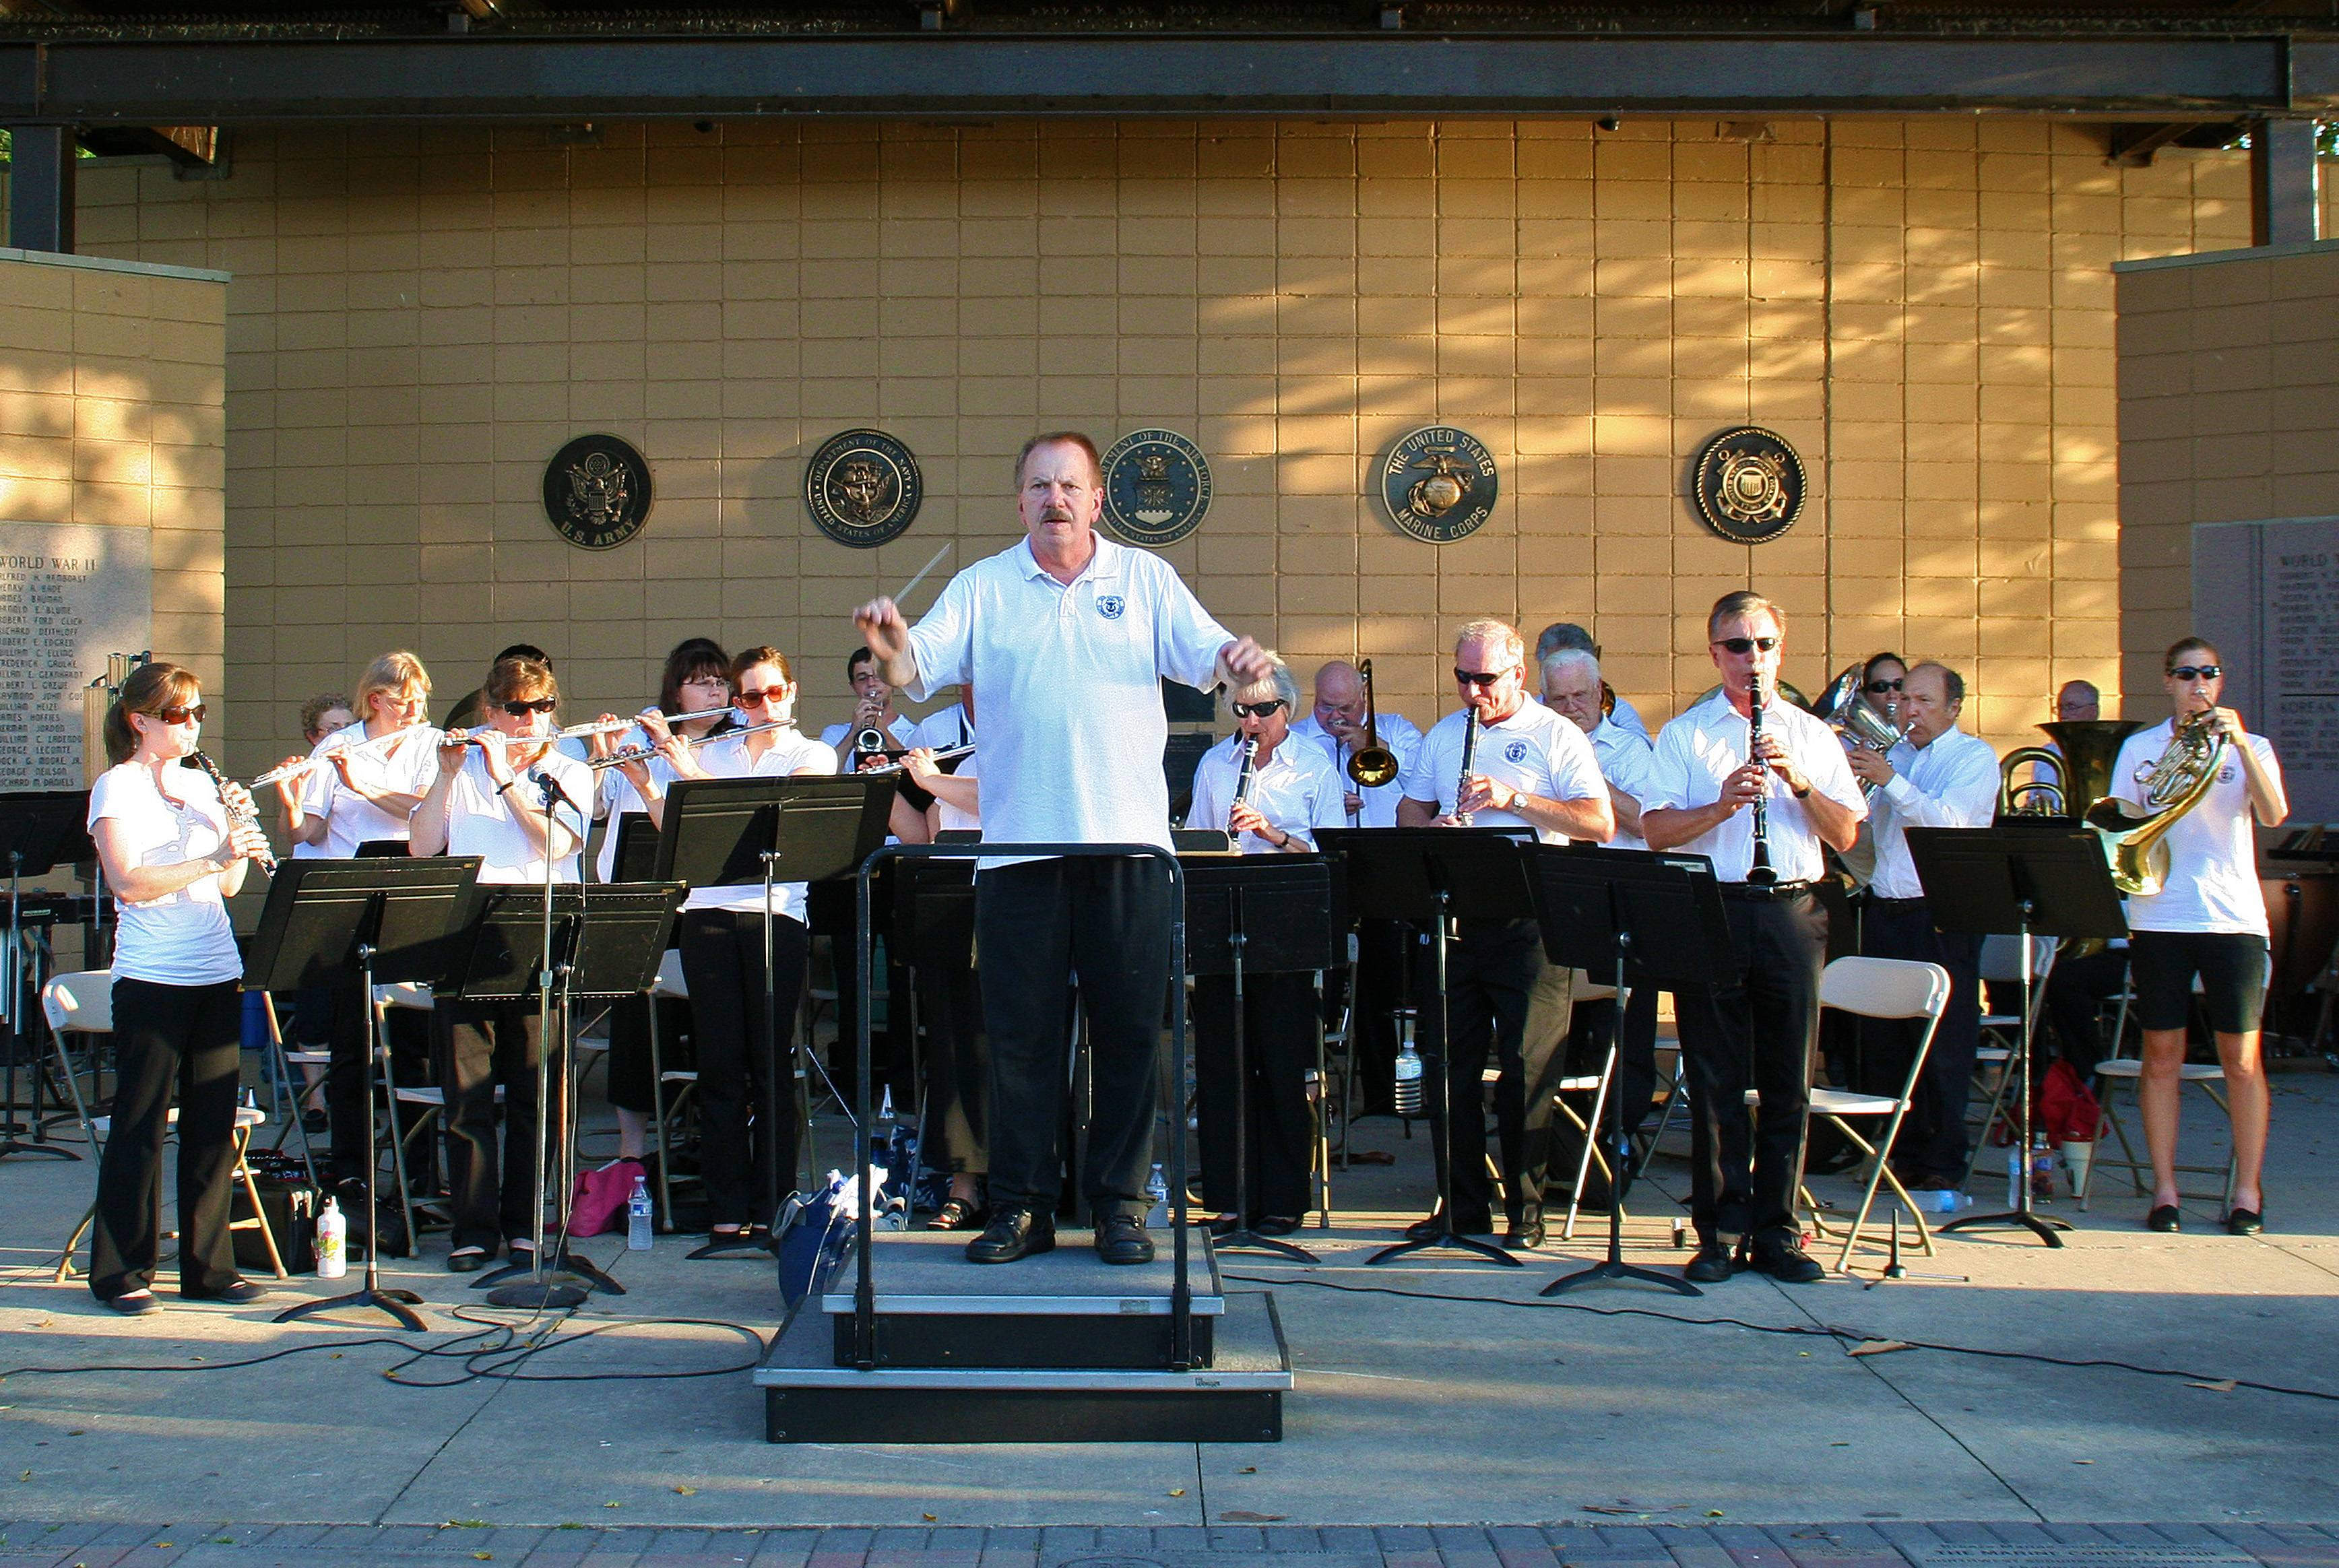 The Des Plaines Community Concert Band, under the direction of Larry J. Carle, performs The Star Spangled Banner, at the Lake Park Memorial Pavilion on July 18.